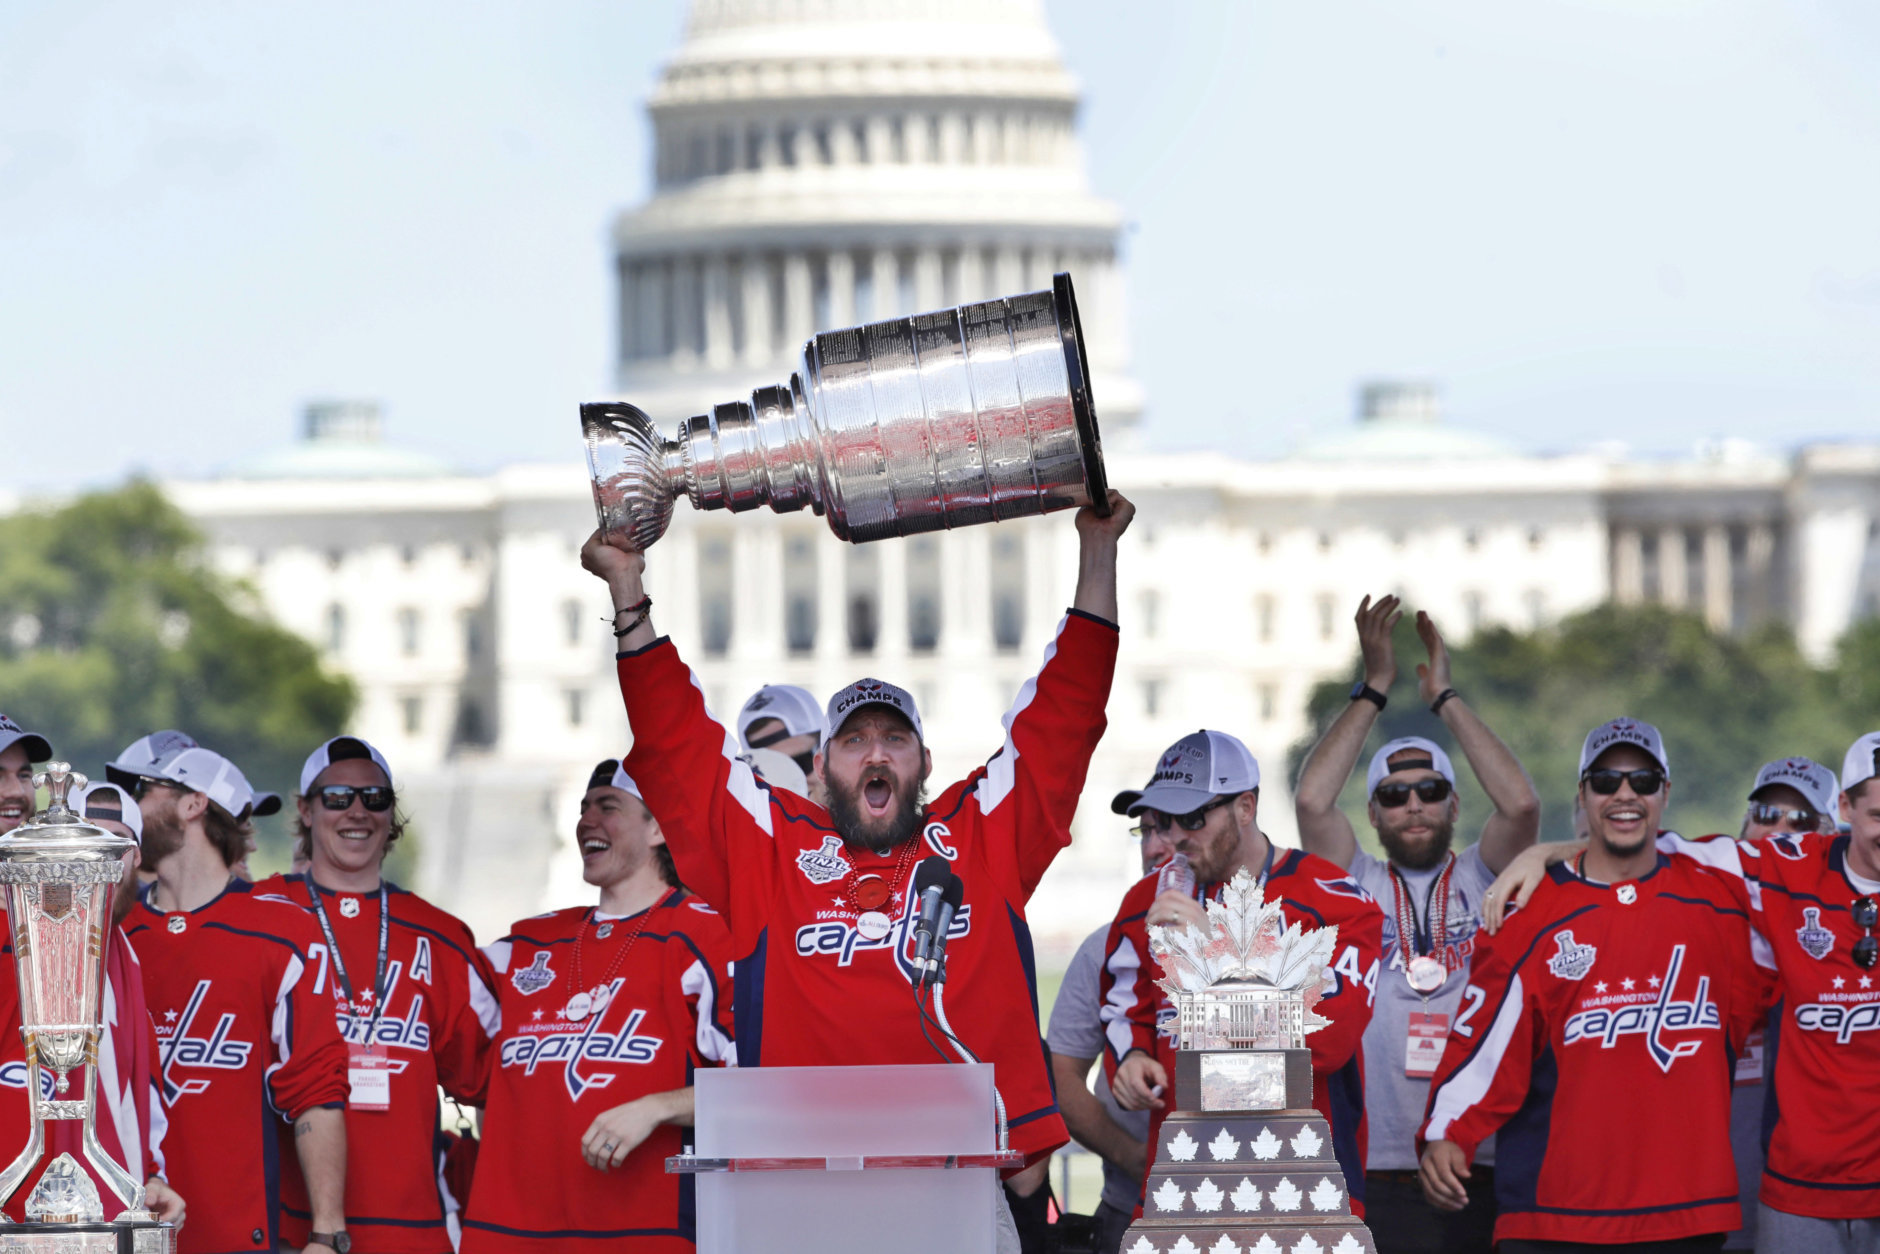 Washington Capitals' Alex Ovechkin, of Russia, holds up the Stanley Cup trophy during the NHL hockey team's Stanley Cup victory celebration, Tuesday, June 12, 2018, at the National Mall in Washington. The U.S. Capitol rises in the background. (AP Photo/Jacquelyn Martin)